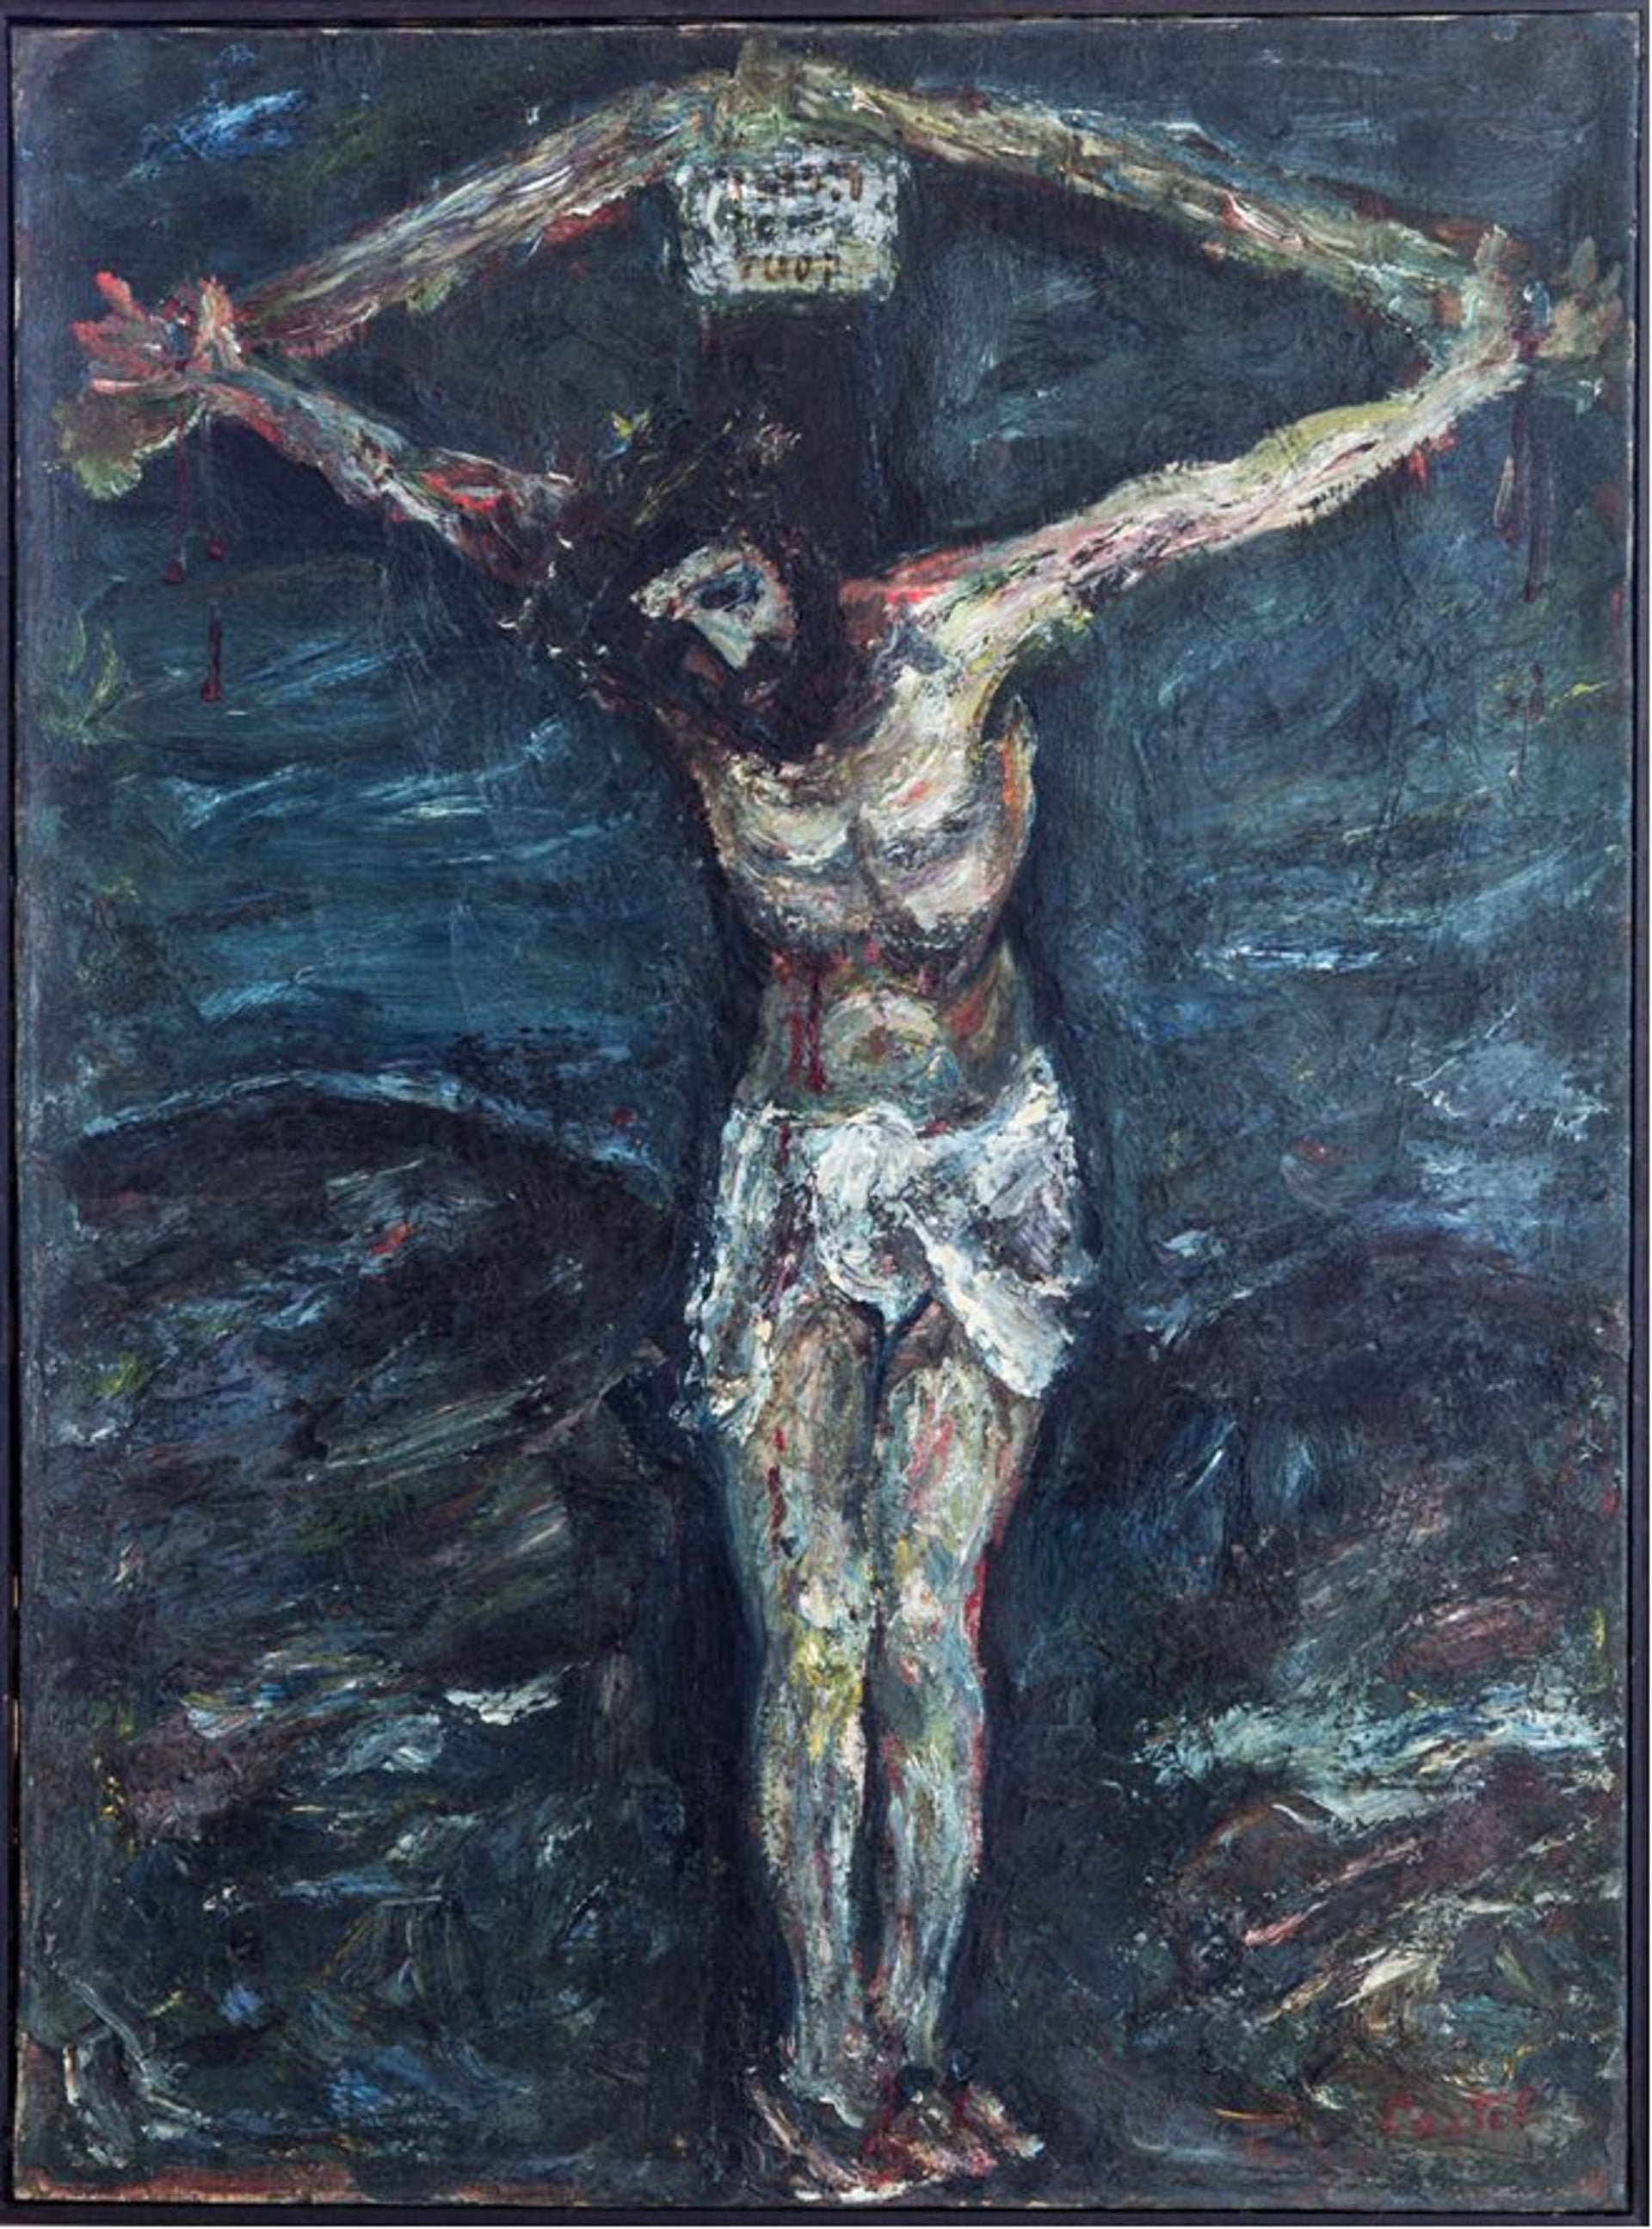 A work by Moshe Castel depicting Jesus on the cross.